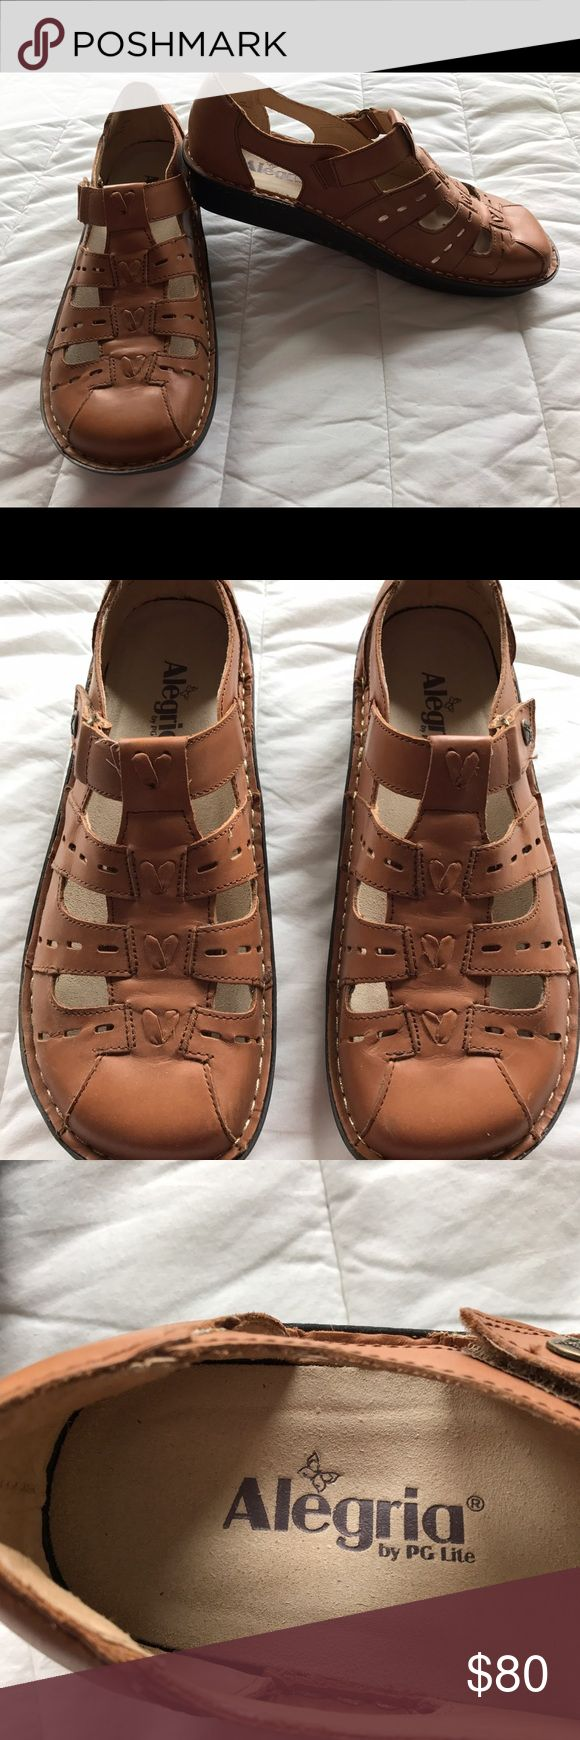 Alegria sandals Brown leather Alegria sandal shoe new to wide for my skinny feet European size 40 alegria Shoes Sandals